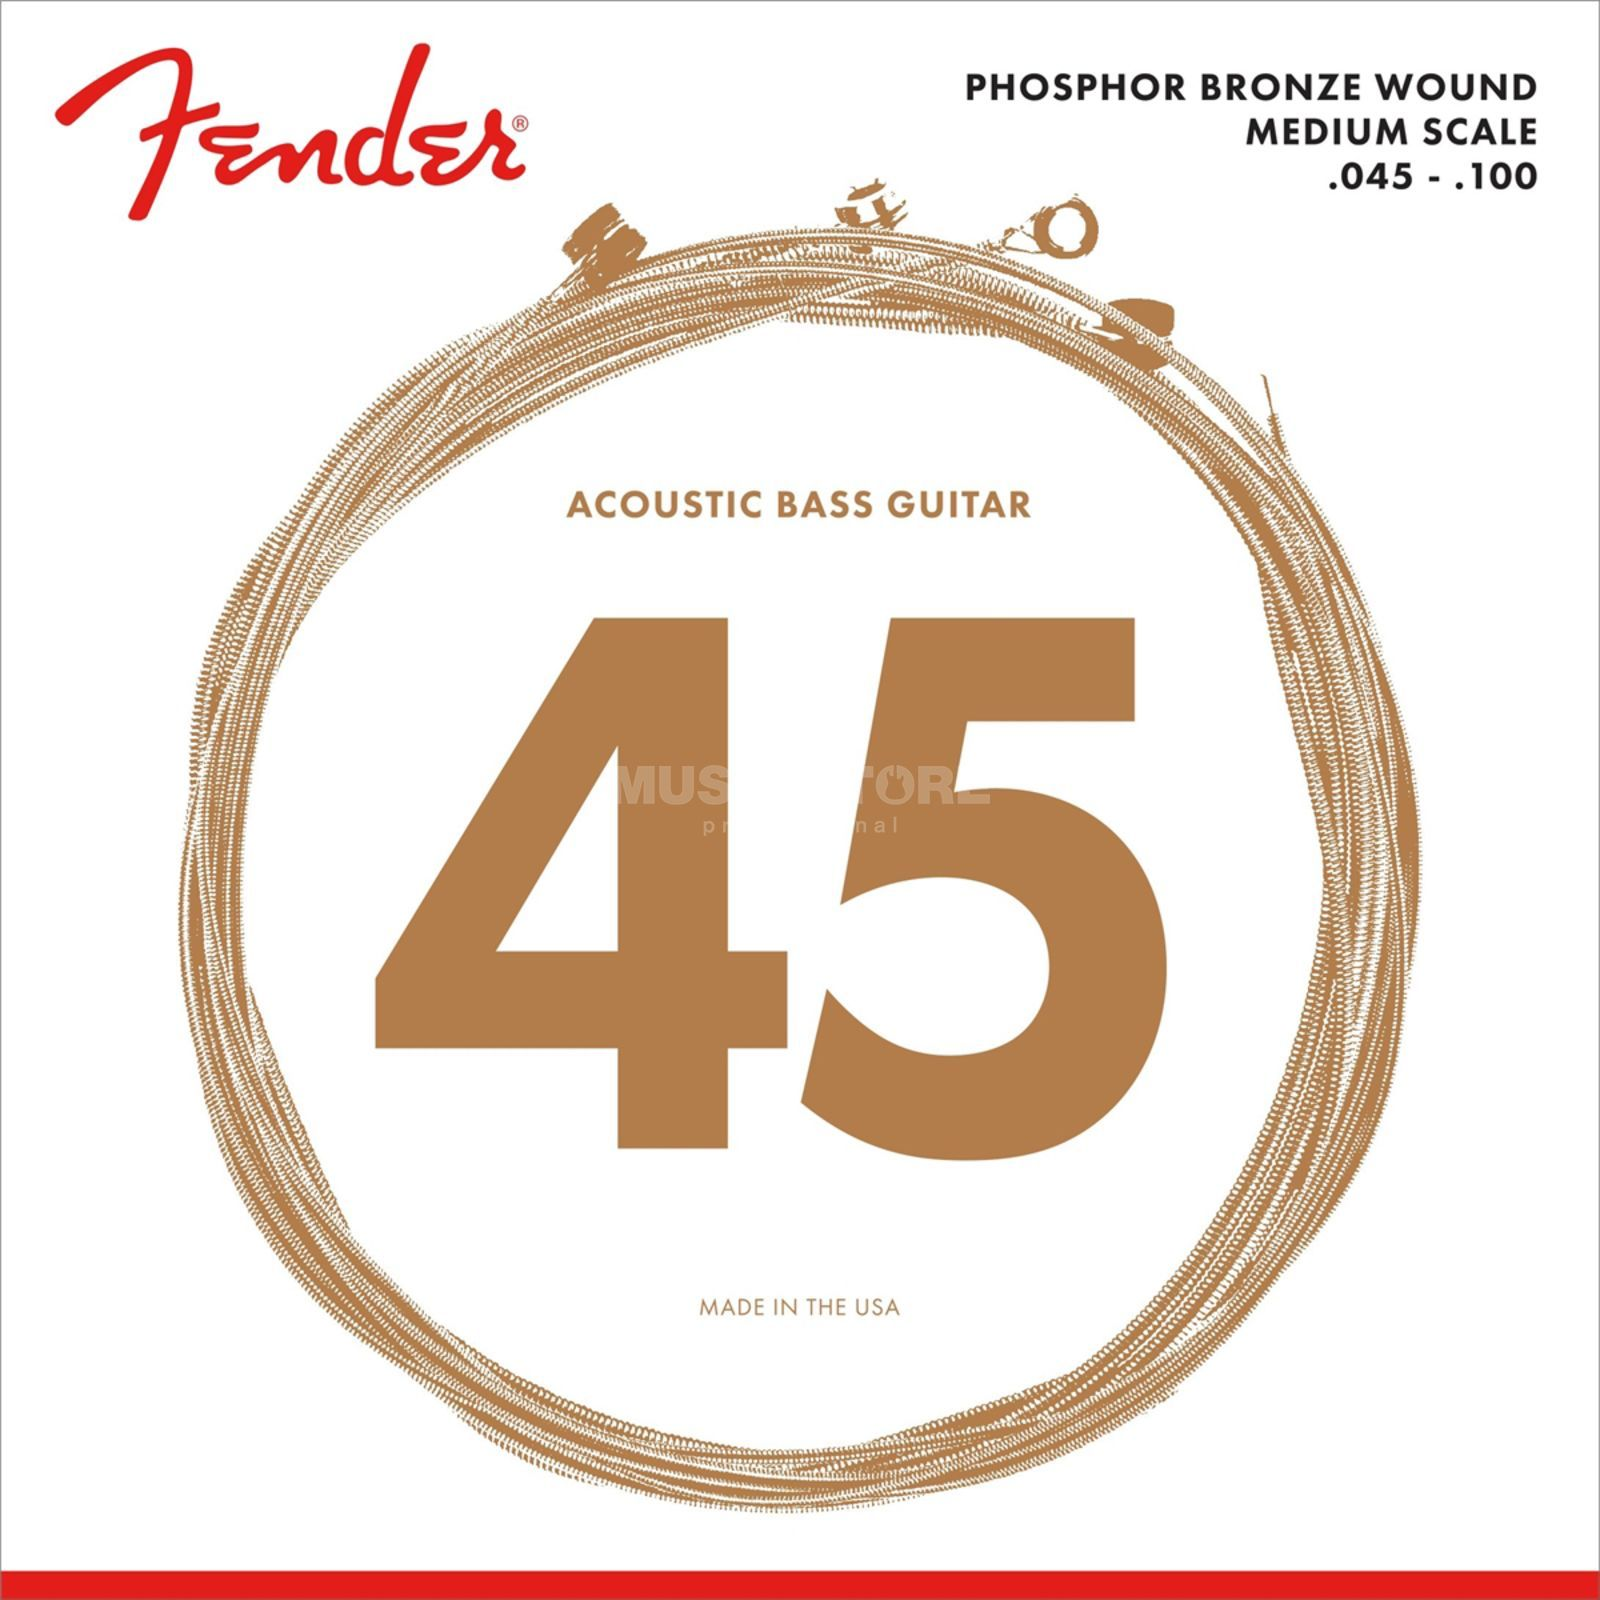 Fender 7060 Phosphor Bronze Acoustic Bass Strings Medium Scale 45-100 Product Image